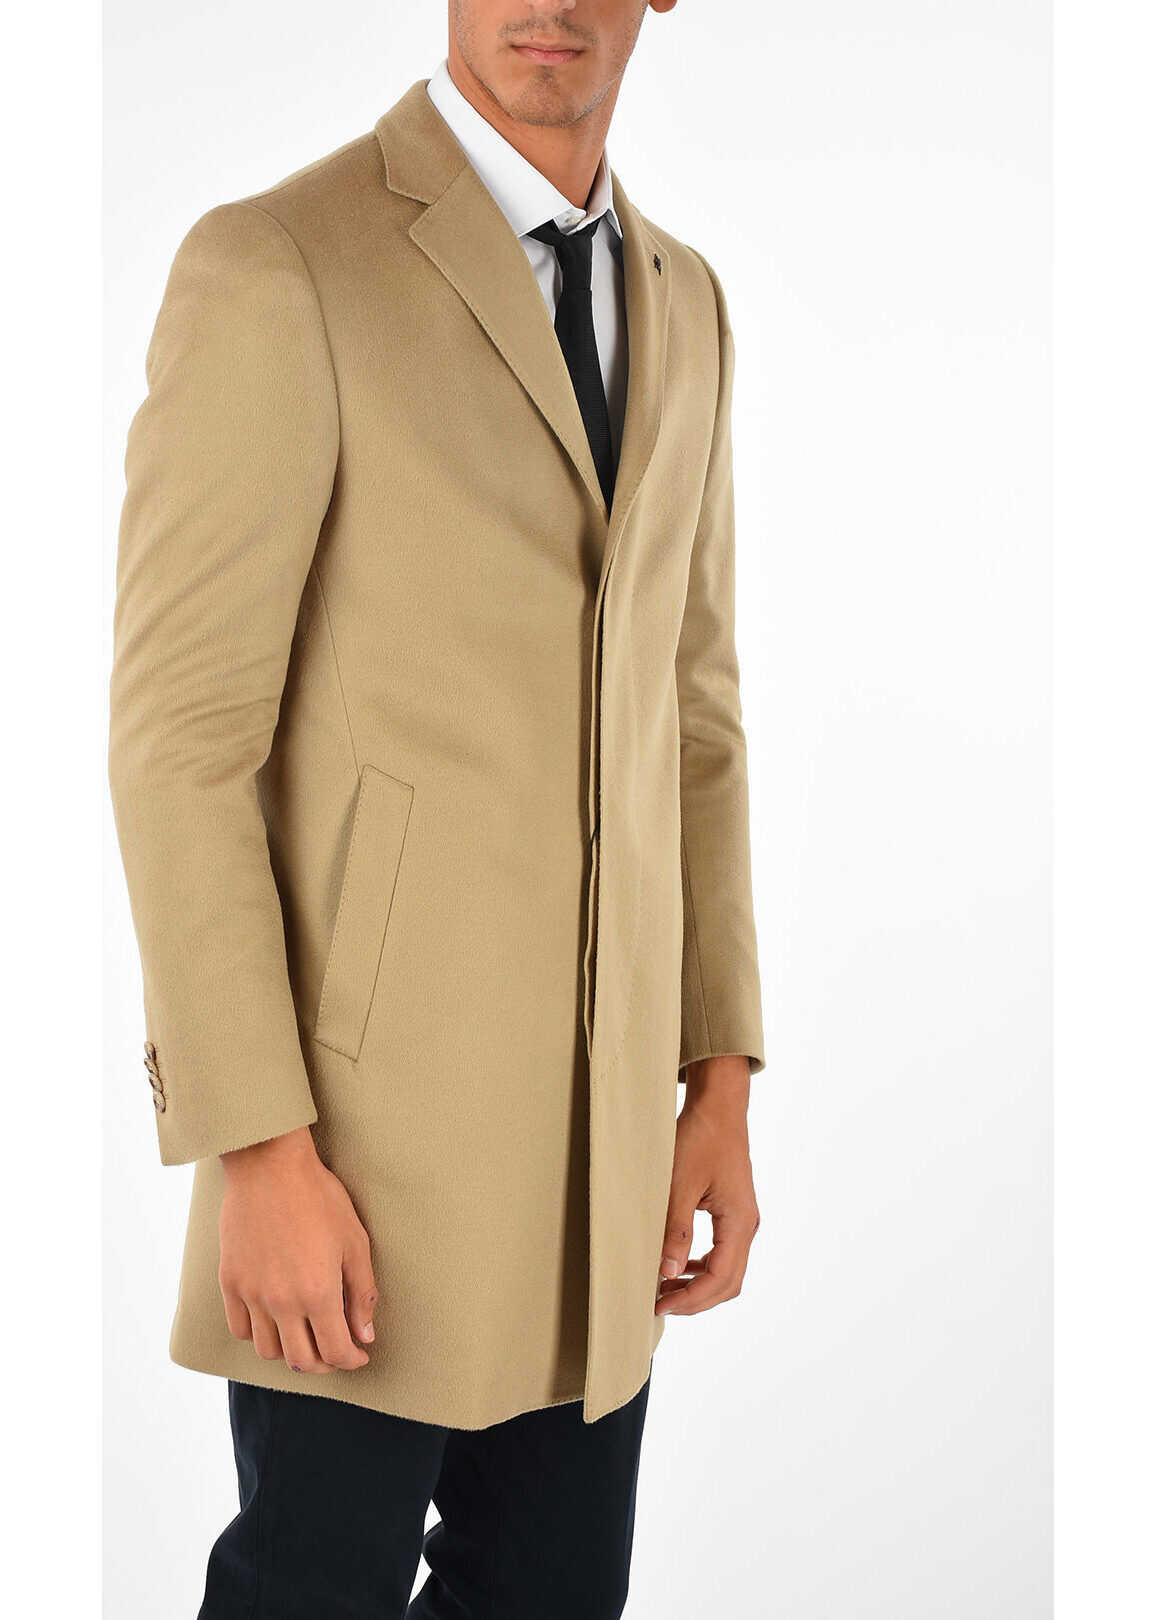 CORNELIANI CC COLLECTION Single Breasted Coat Hidden Closure BEIGE